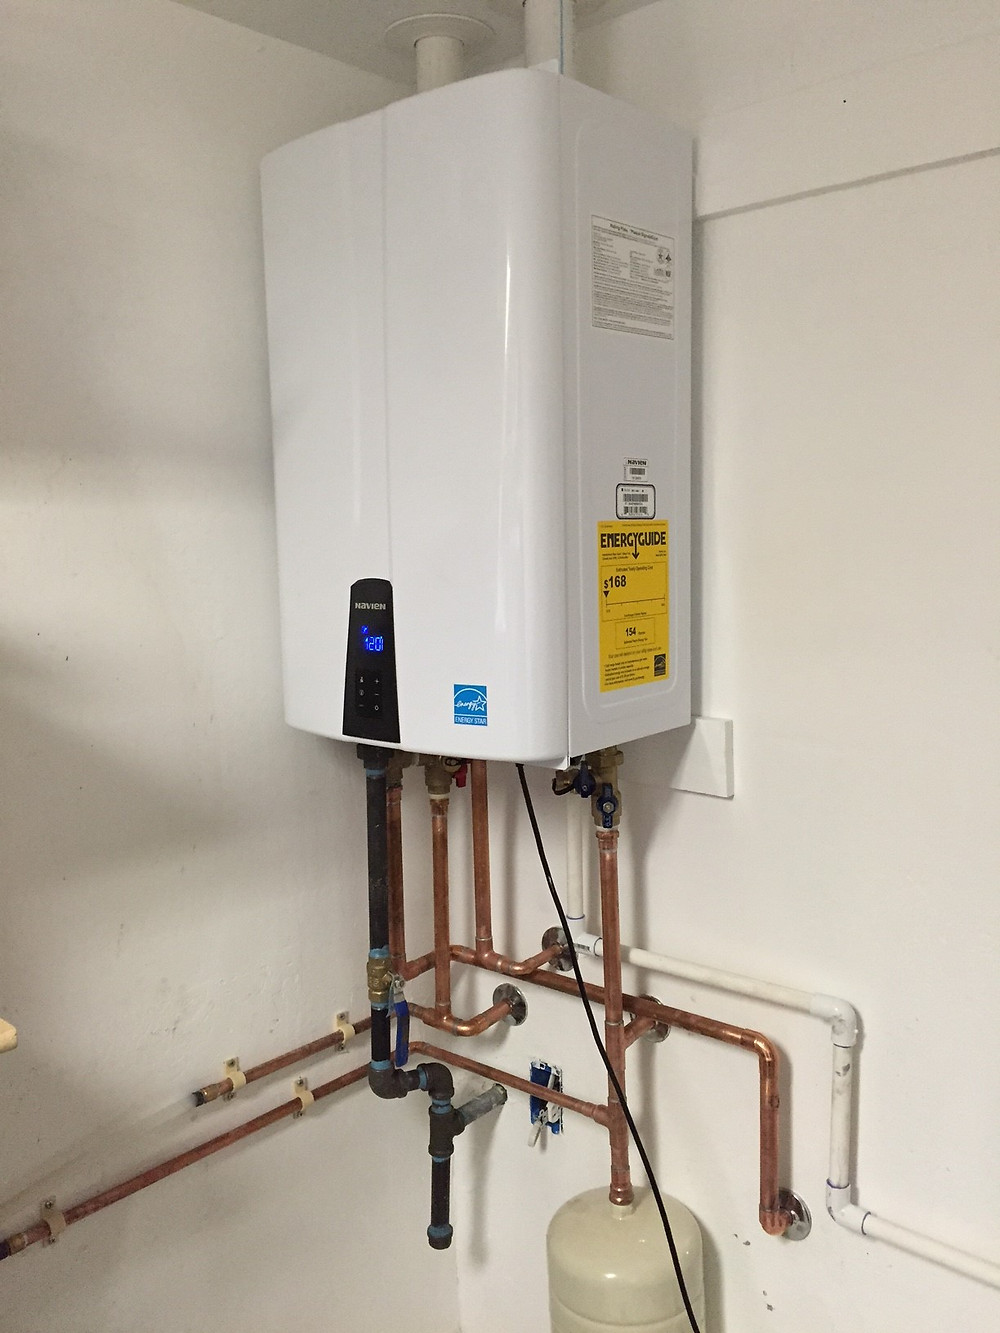 Plumber installs a Tankless Water Heater in Flagstaff